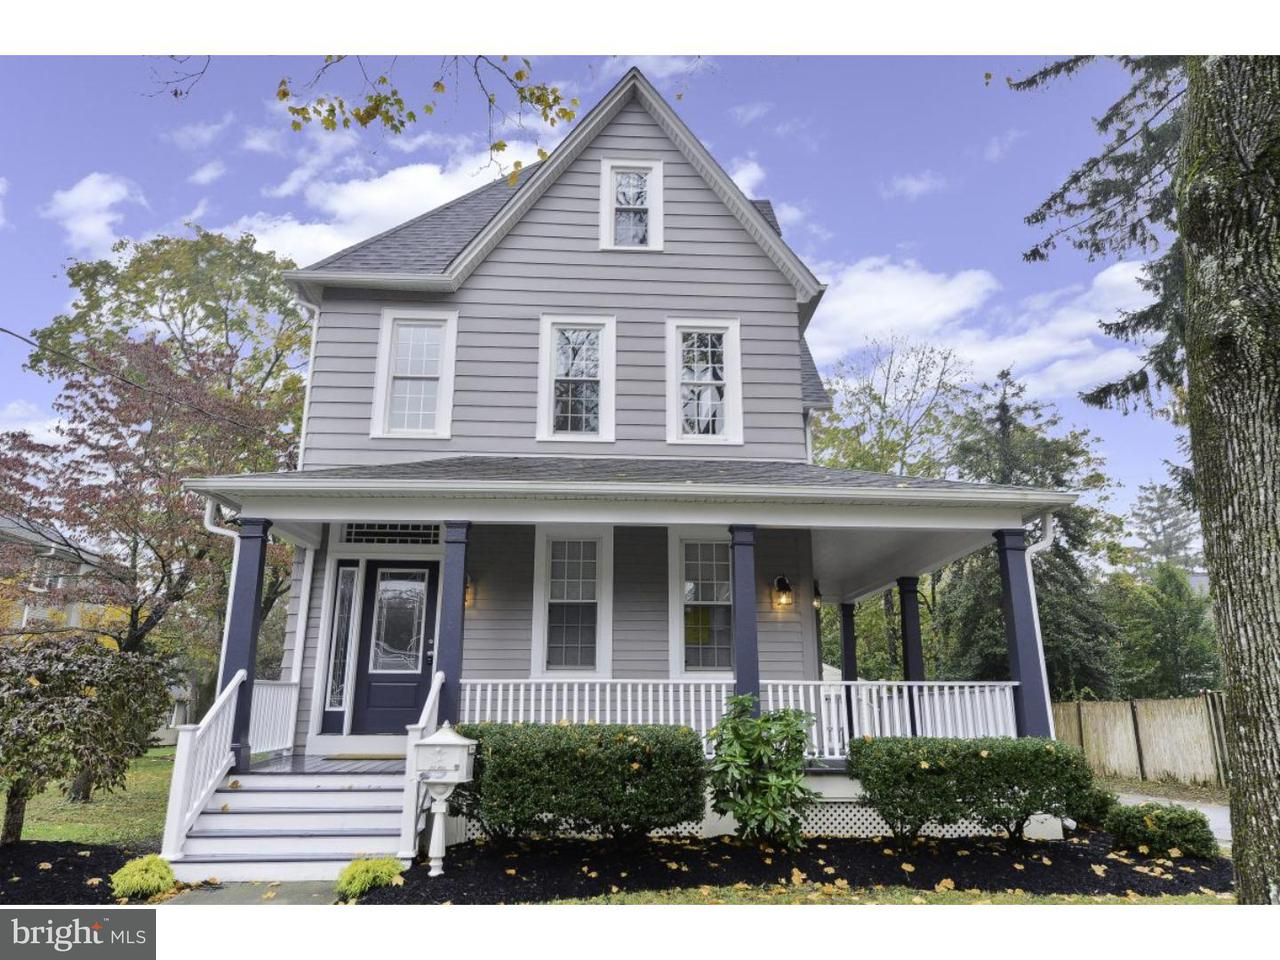 Single Family Home for Sale at 9 S MARION Avenue Wenonah, New Jersey 08090 United States